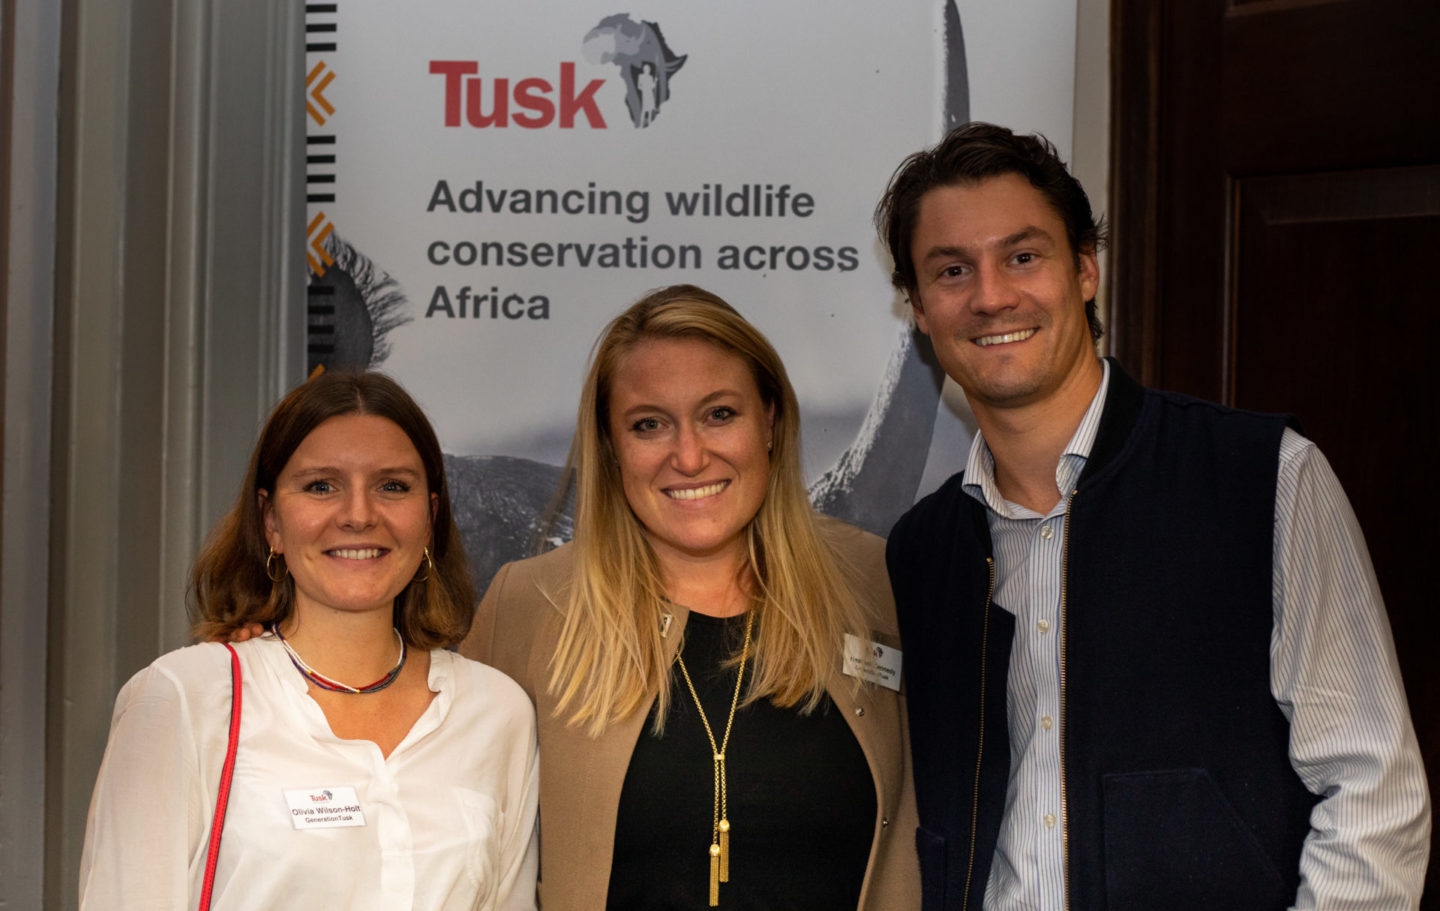 Liv Wilson-Holt, Heather Kennedy and Harry Legge from the GenerationTusk Committee